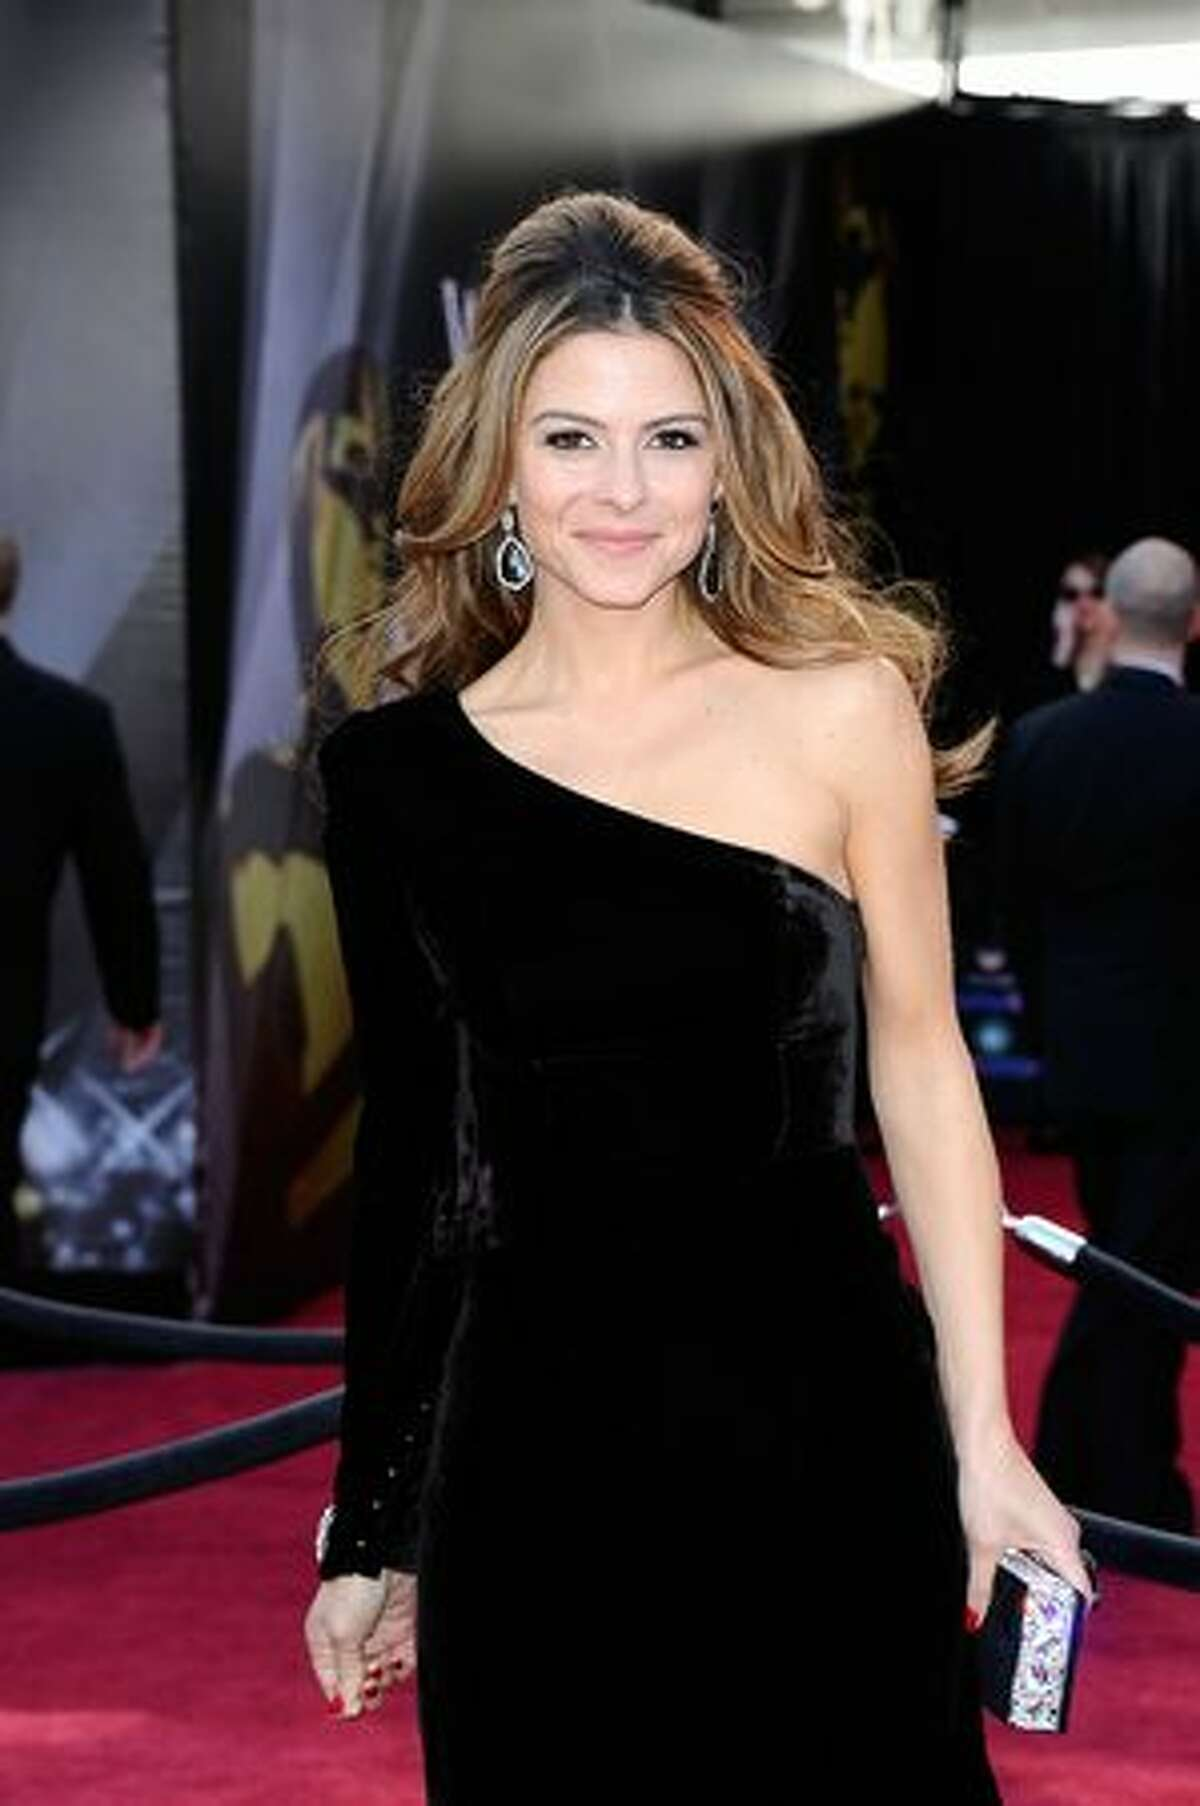 TV personality Maria Menounos arrives at the 83rd Annual Academy Awards held at the Kodak Theatre in Hollywood, California.